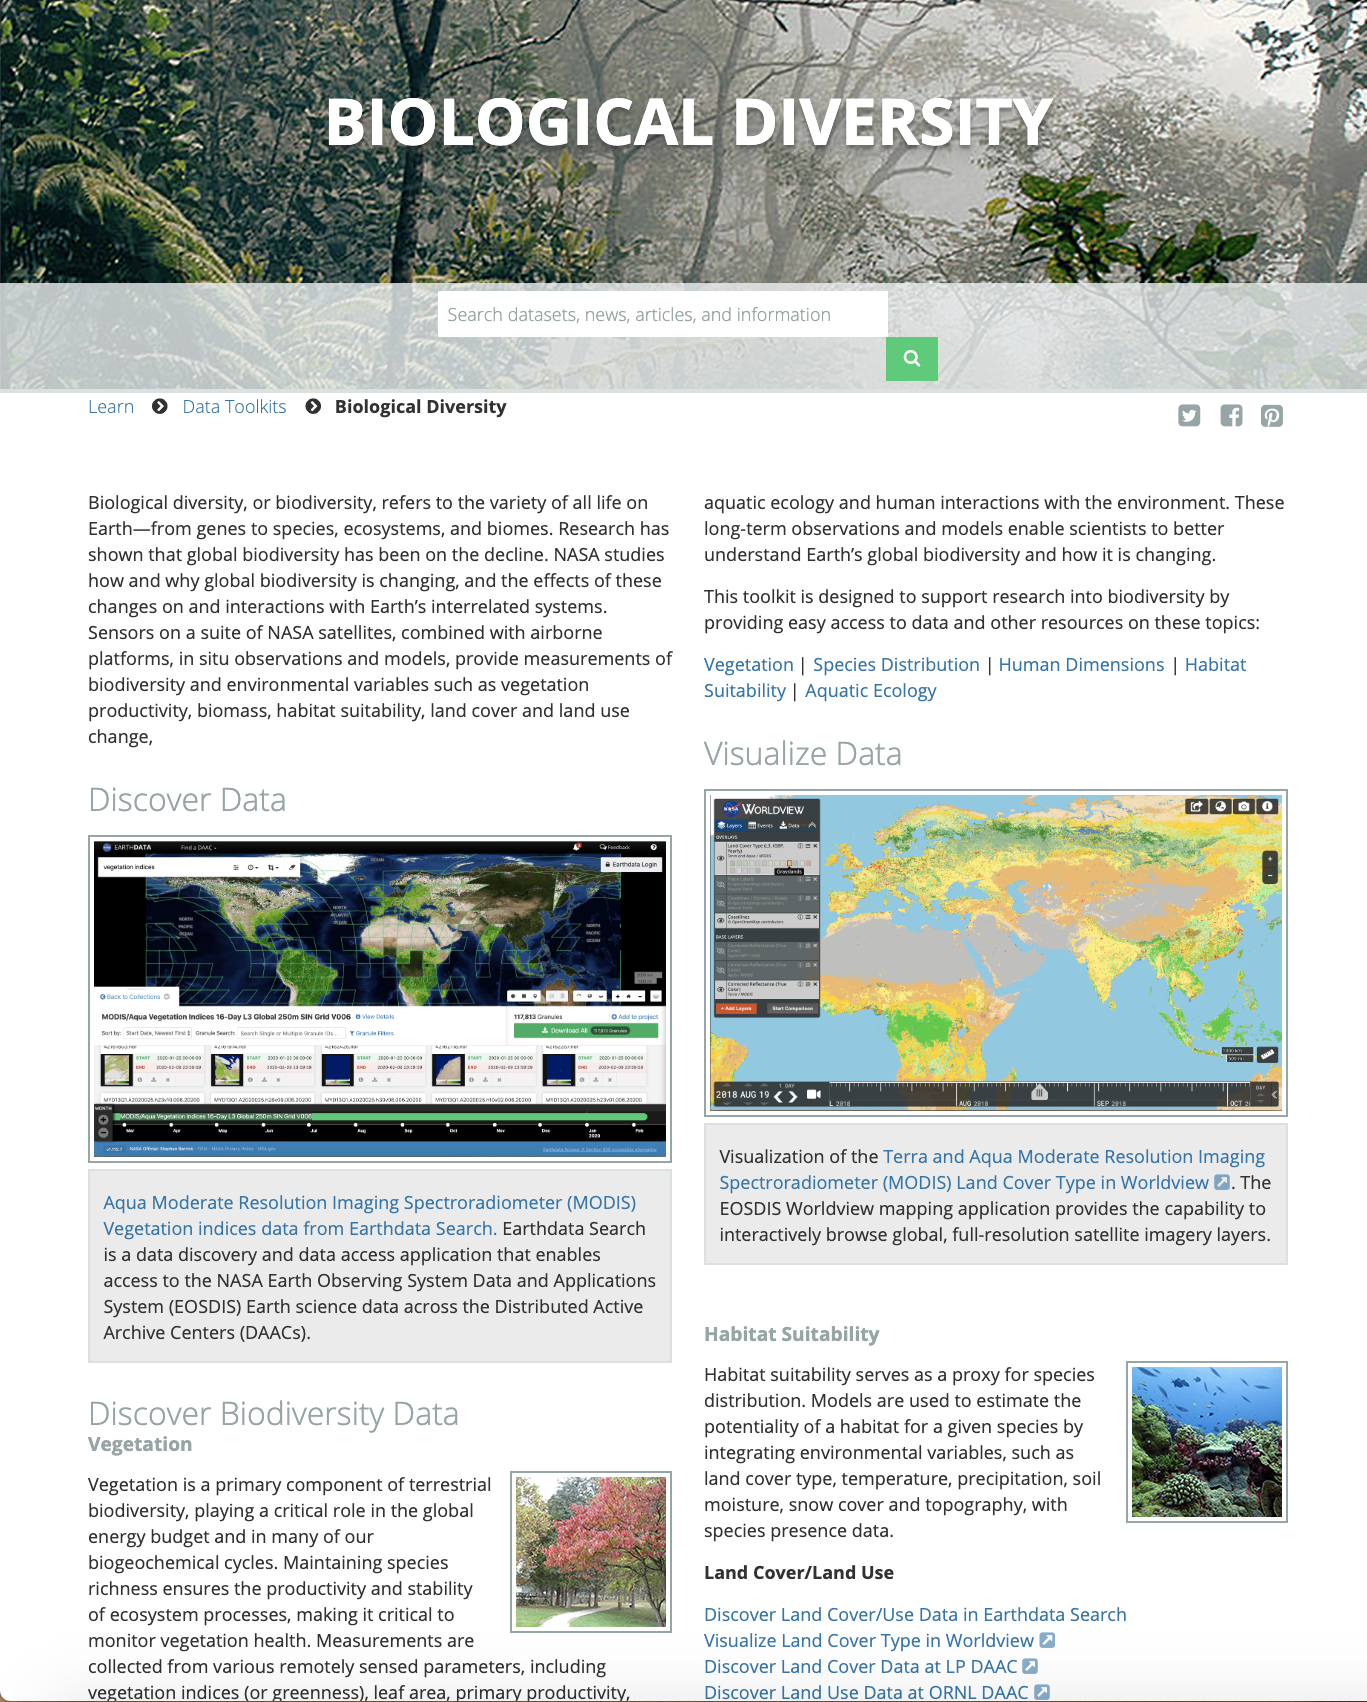 Screenshot of the Biodiversity toolkit page.